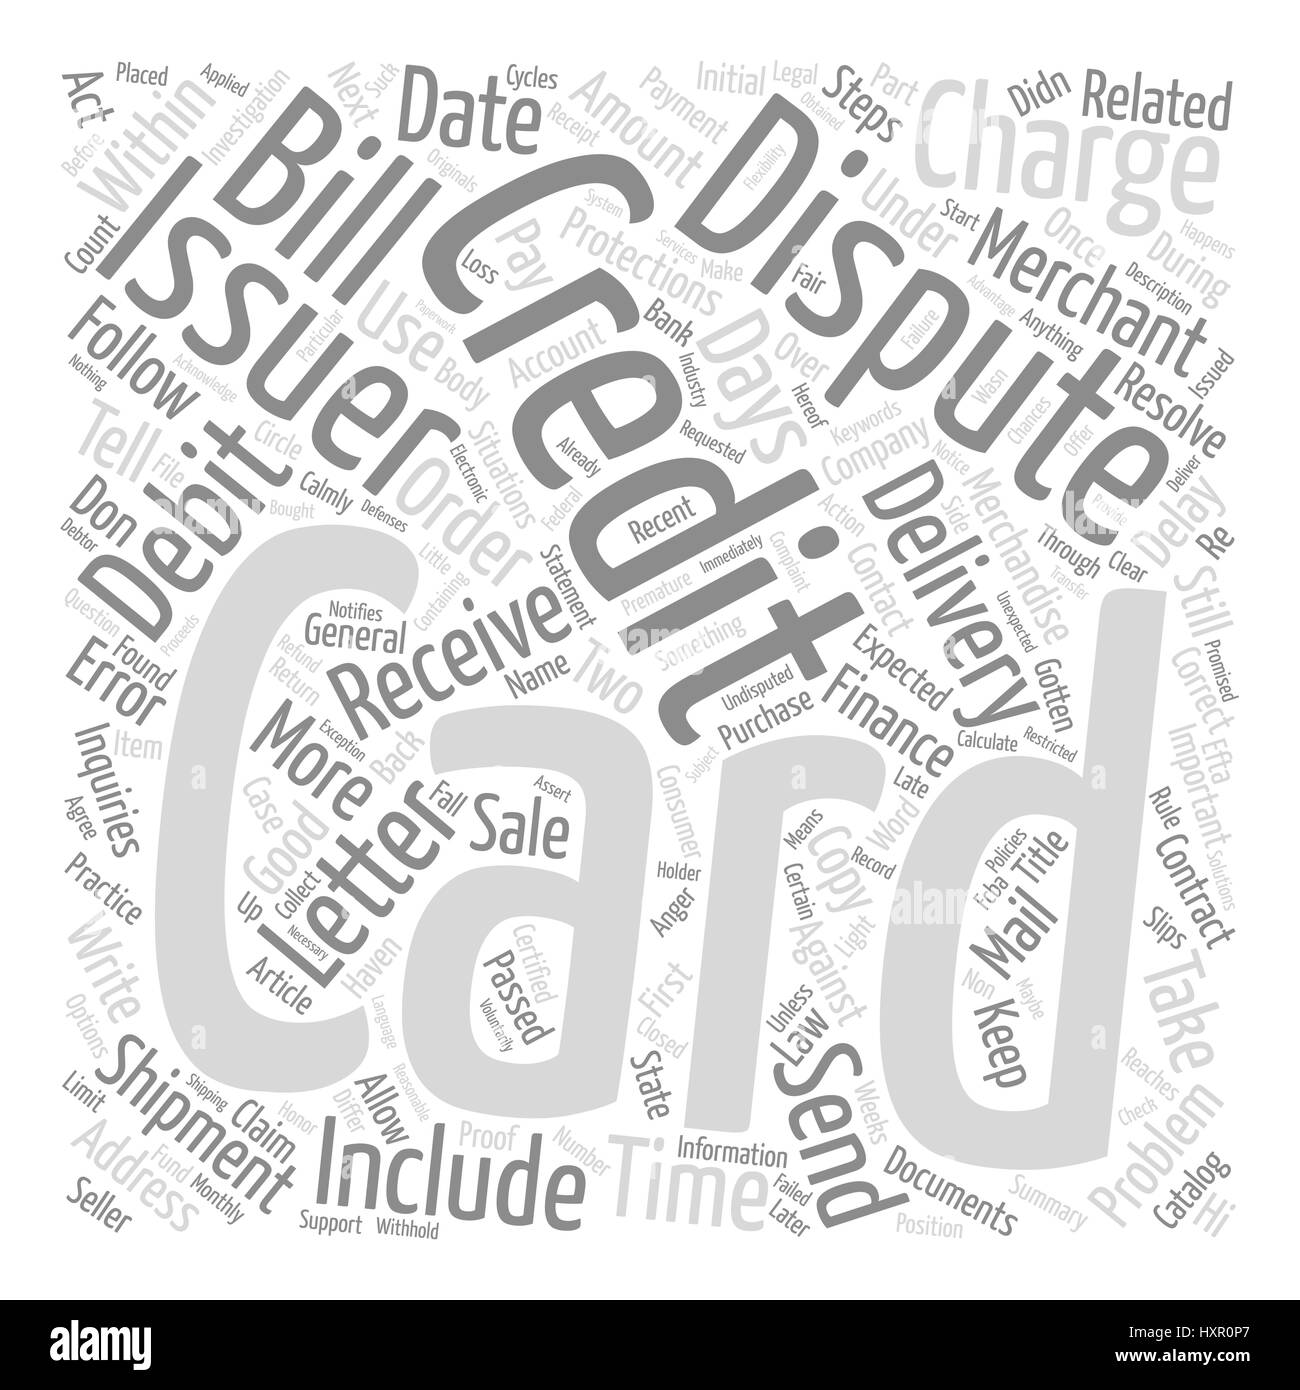 How Do You Dispute An Error On Your Credit Card text background word cloud concept - Stock Image